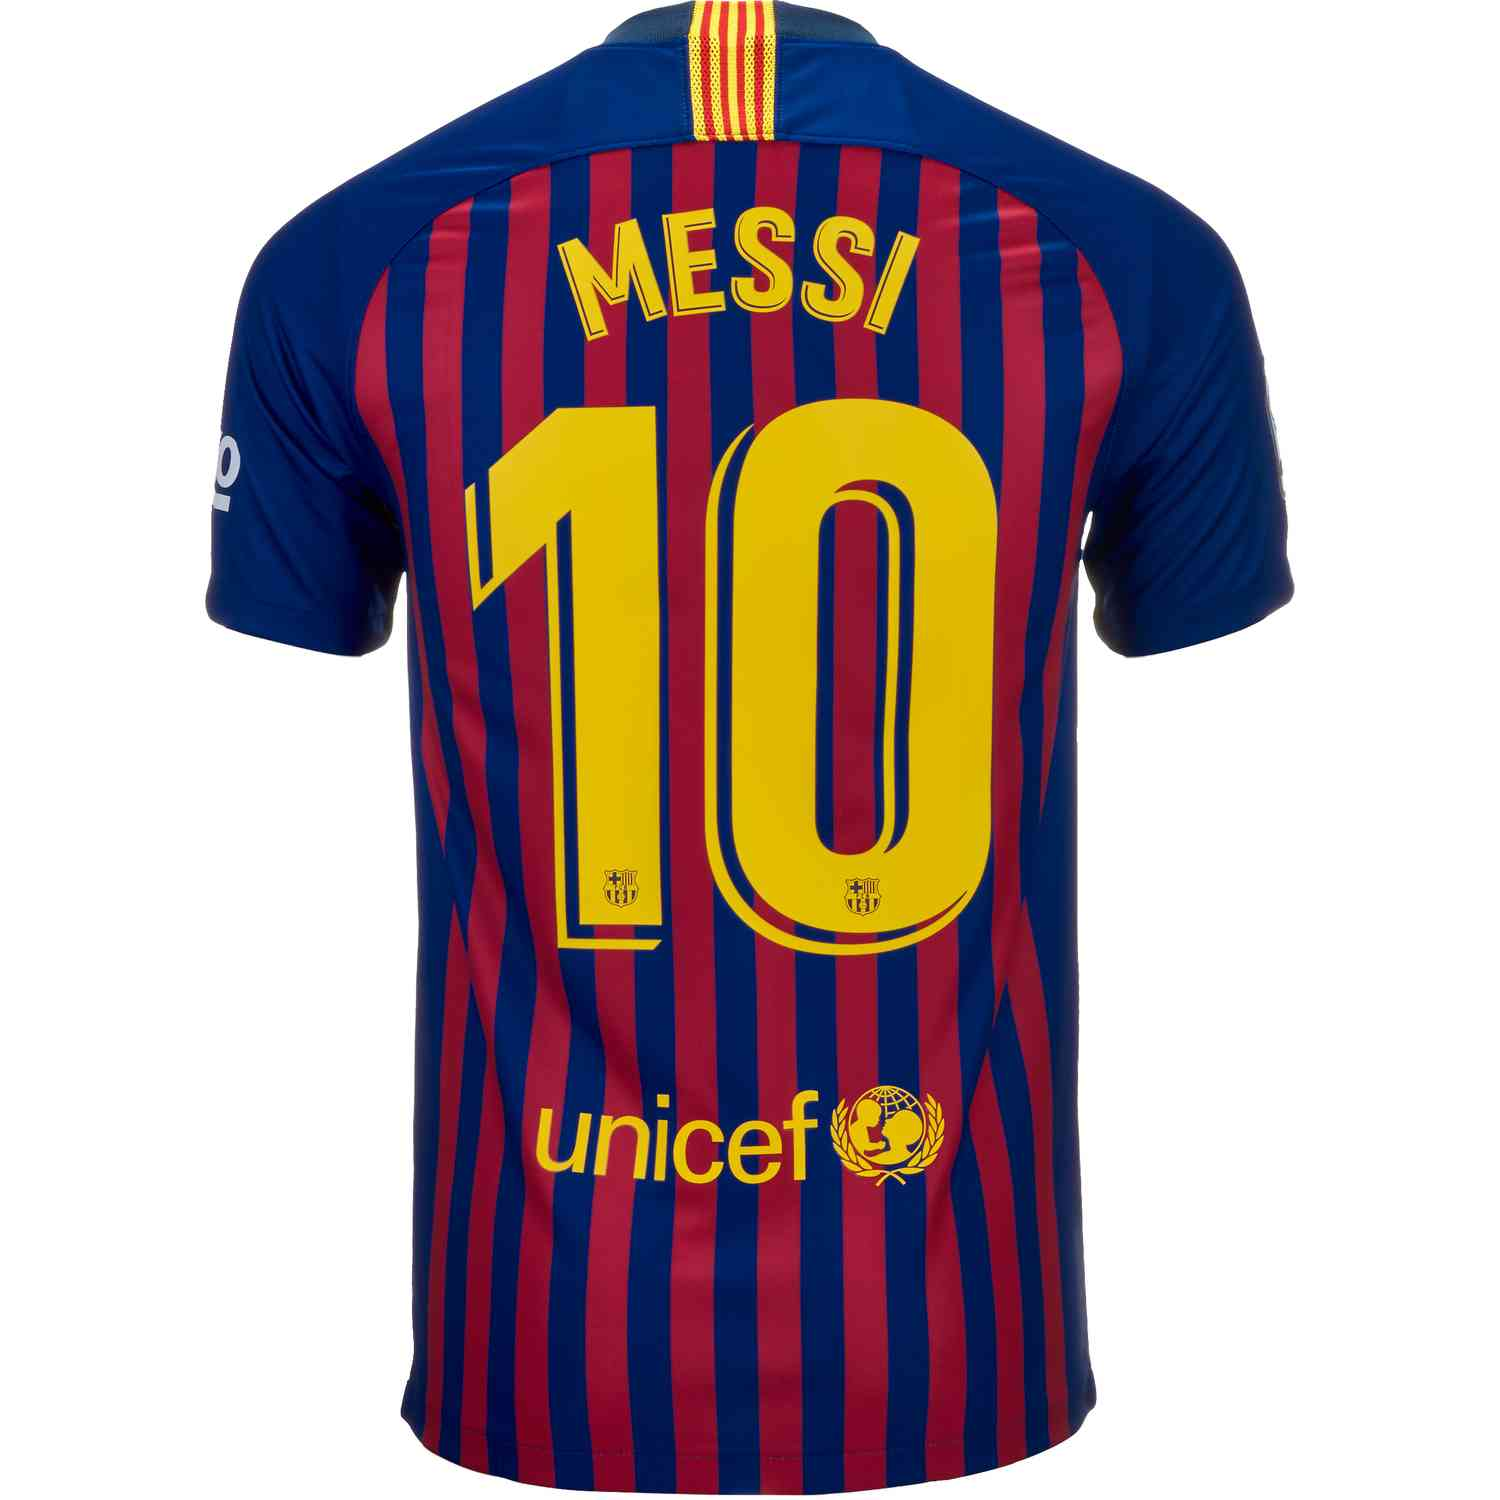 946fc3abc Nike Messi Barcelona Home Jersey - Youth 2018-19 - SoccerPro